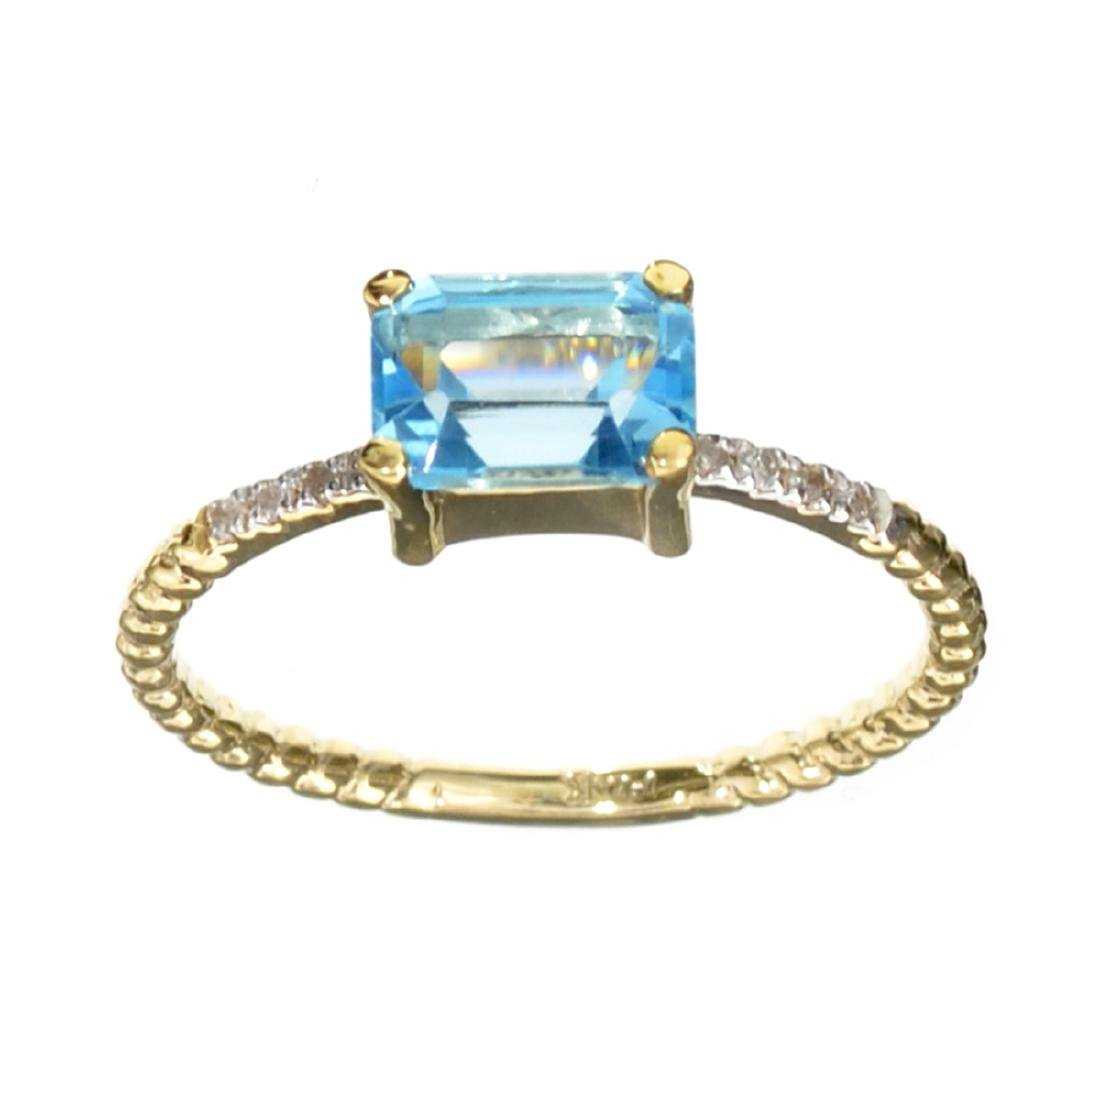 APP: 0.7k Fine Jewelry 14KT Gold, 1.38CT Blue Topaz